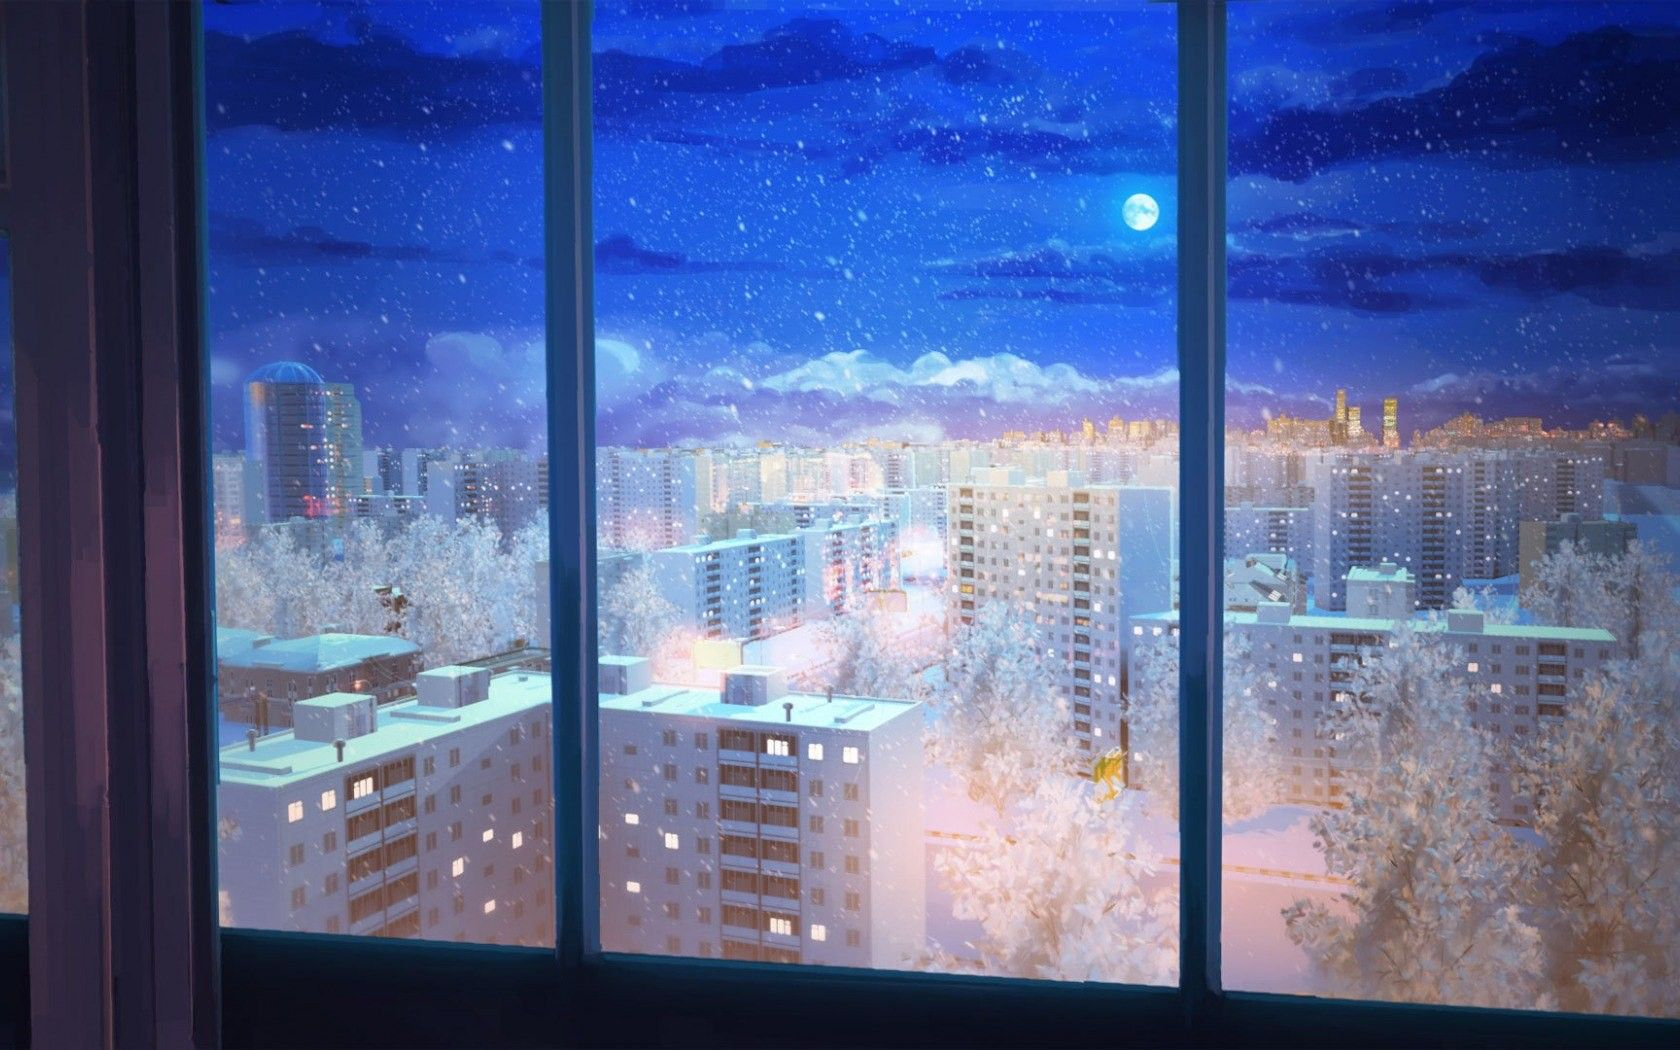 Cozy View 1680 1050 R Wallpapers Anime Scenery Wallpaper Anime Scenery Episode Backgrounds